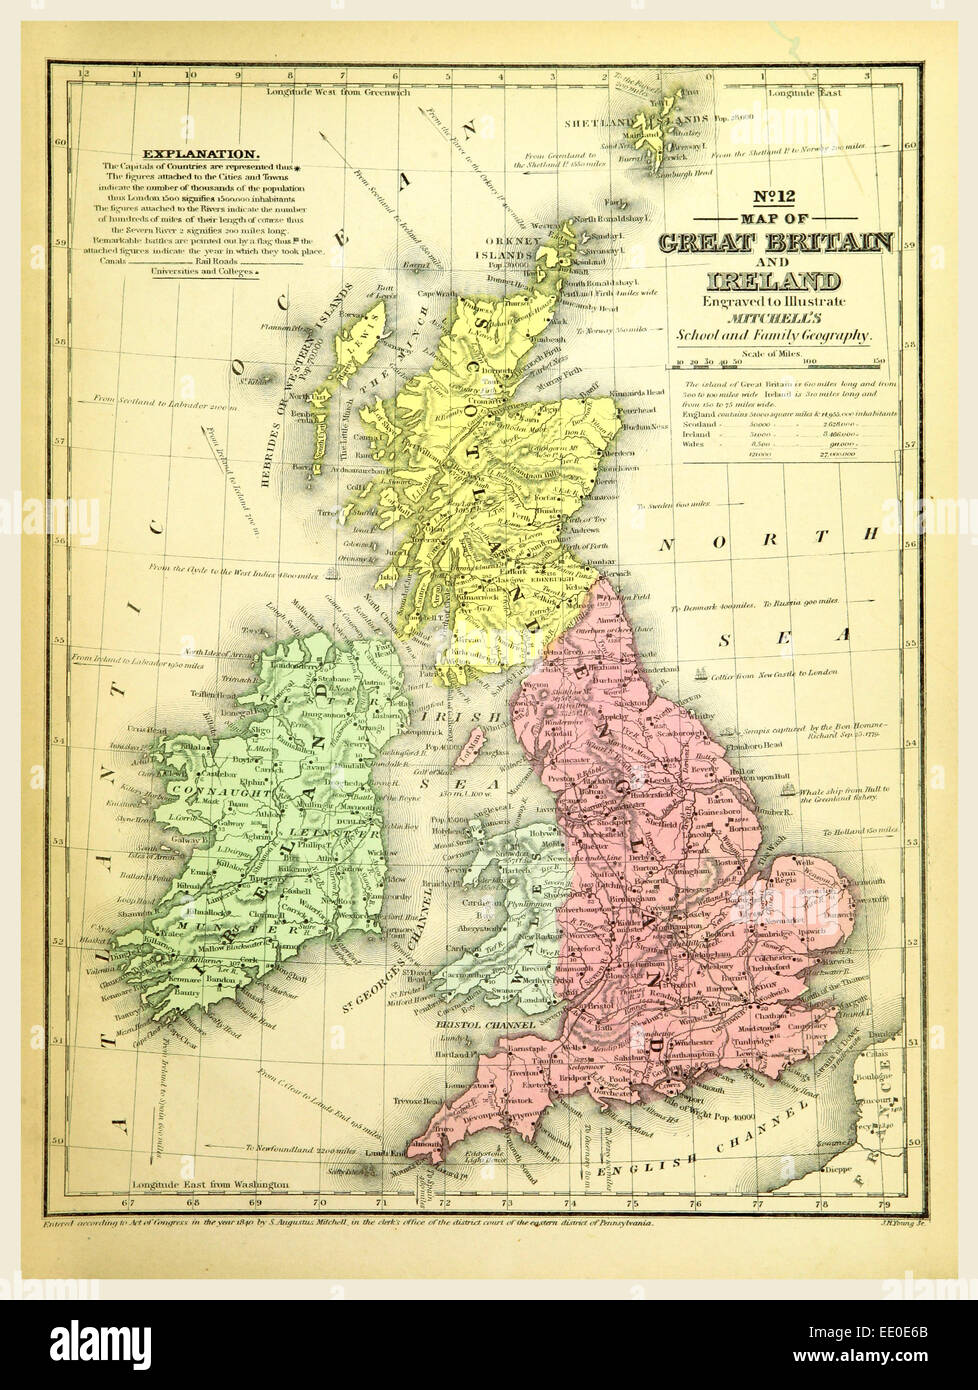 Map Of Great Britain And Ireland Th Century Engraving Stock - Map of great britain and ireland